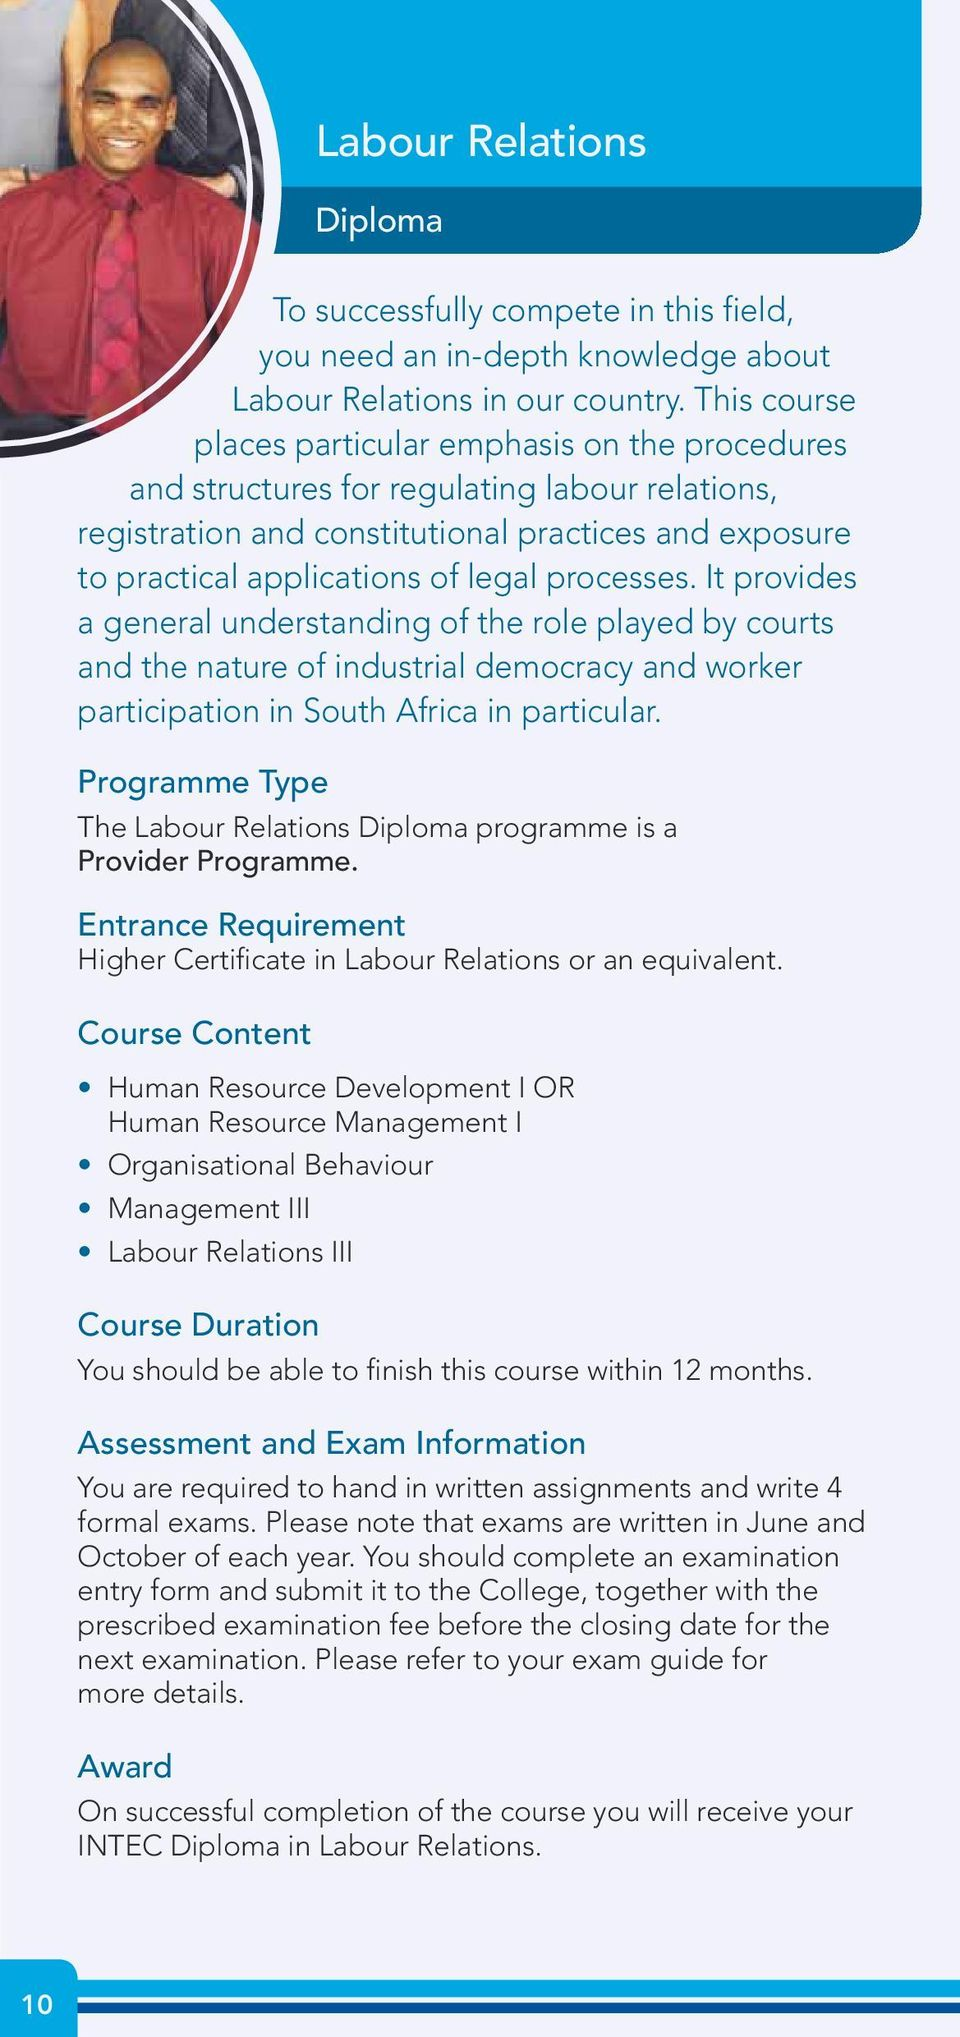 processes. It provides a general understanding of the role played by courts and the nature of industrial democracy and worker participation in South Africa in particular.